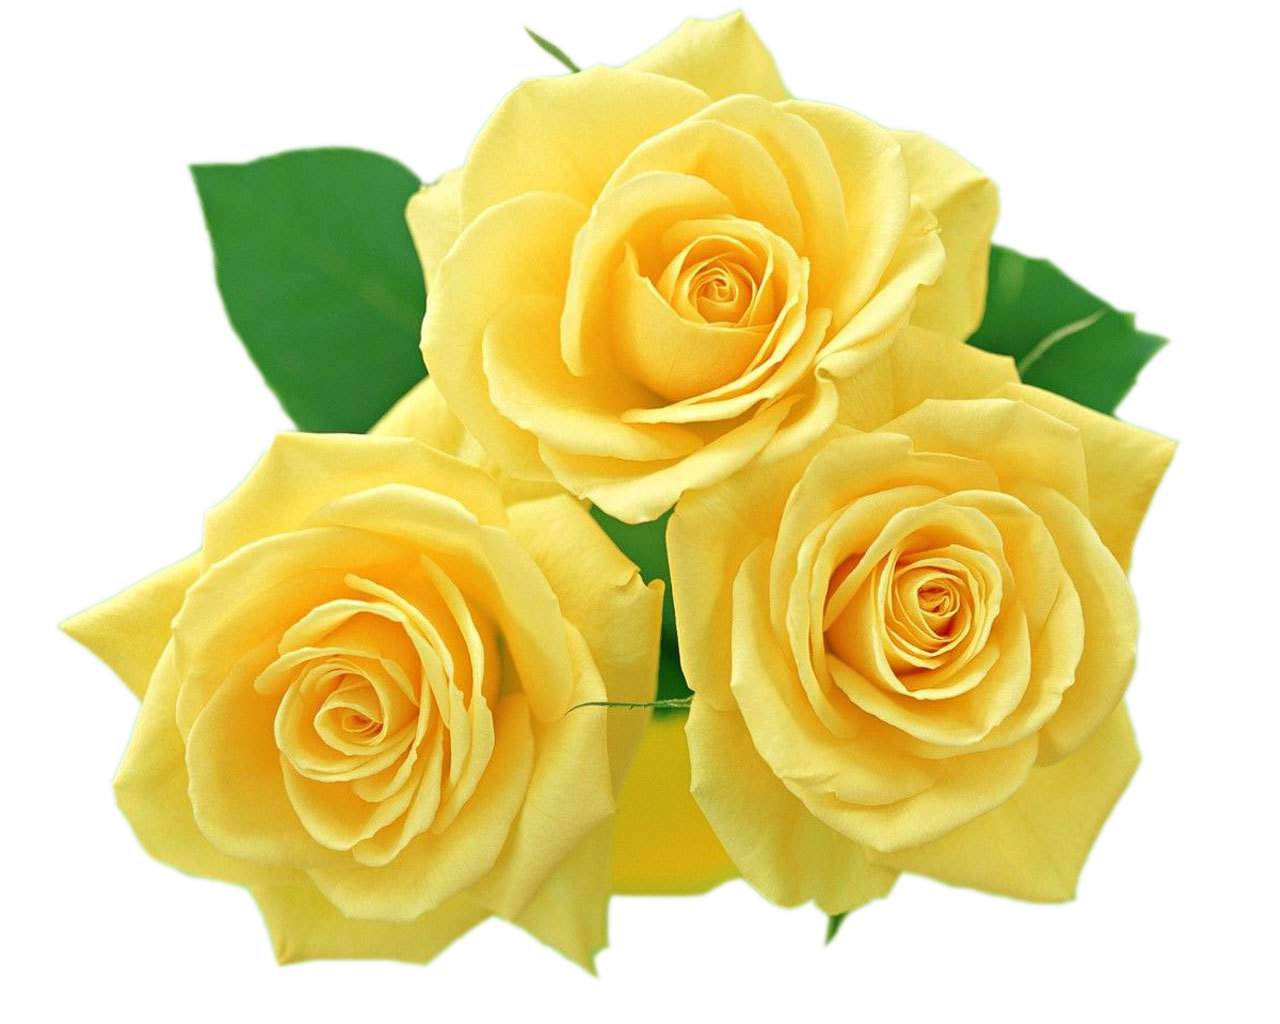 Rose clipart yellow rose. Roses png gallery yopriceville